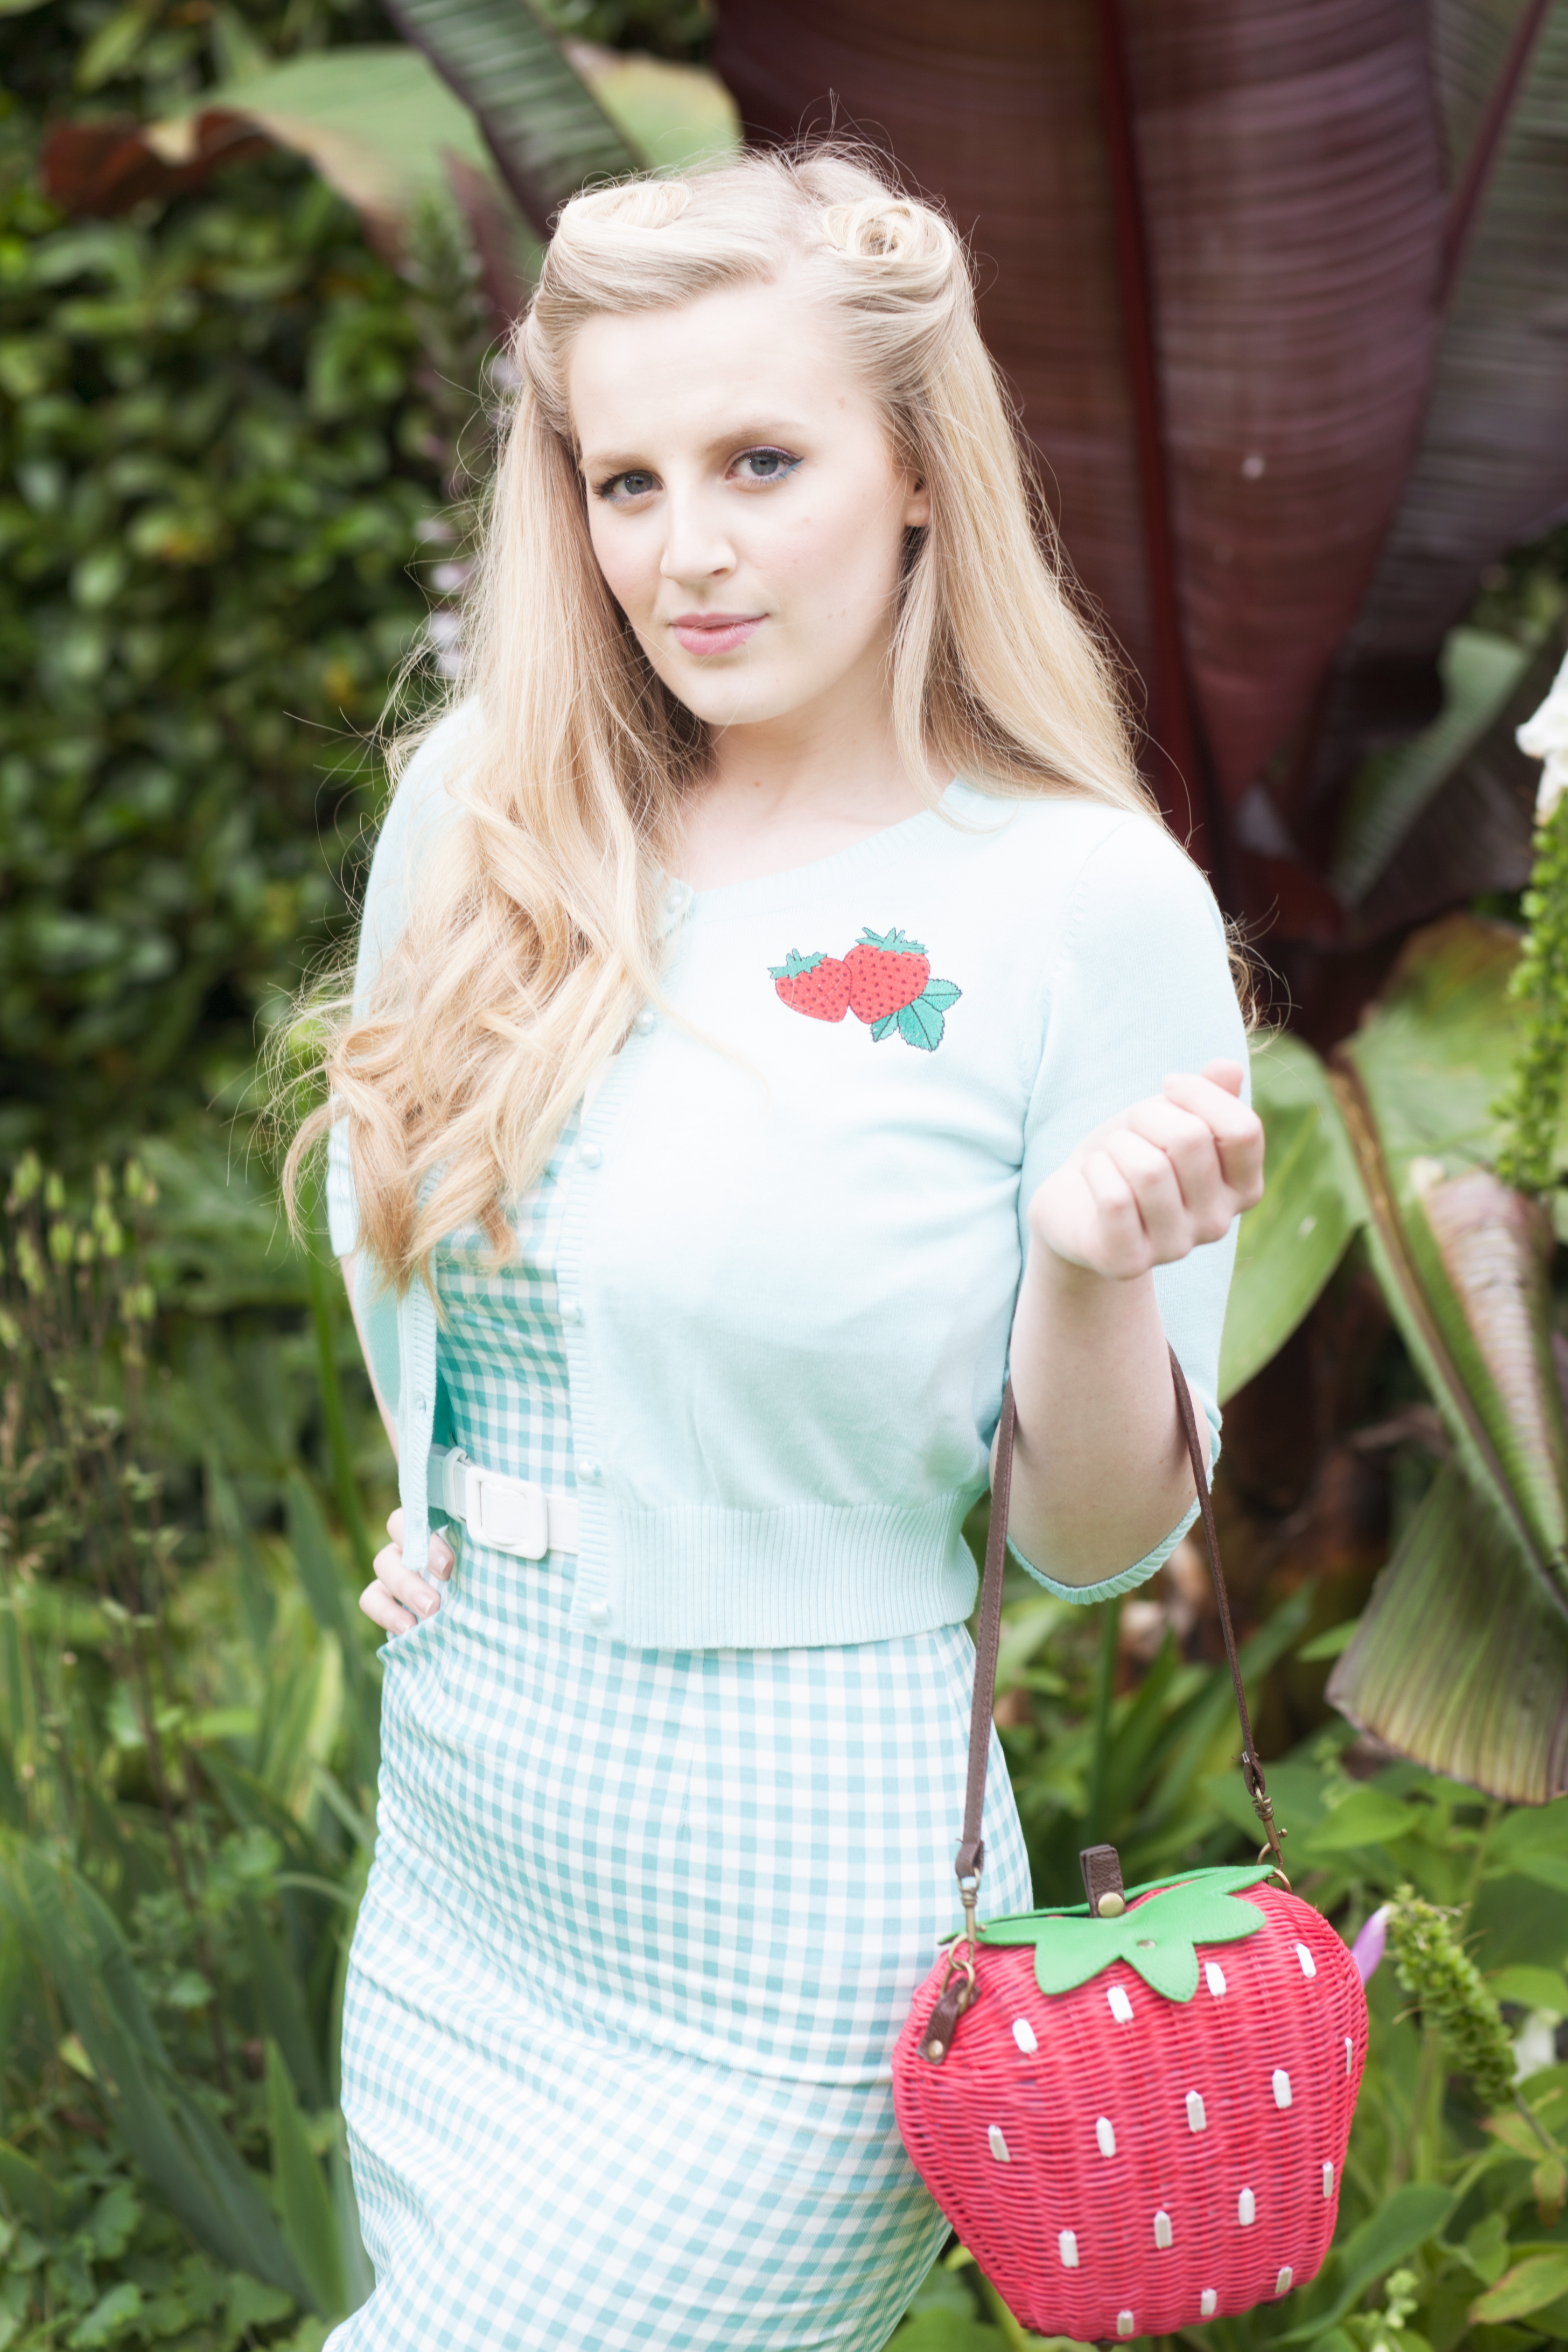 Abby Russell Wimbledon gingham dress and strawberry bag